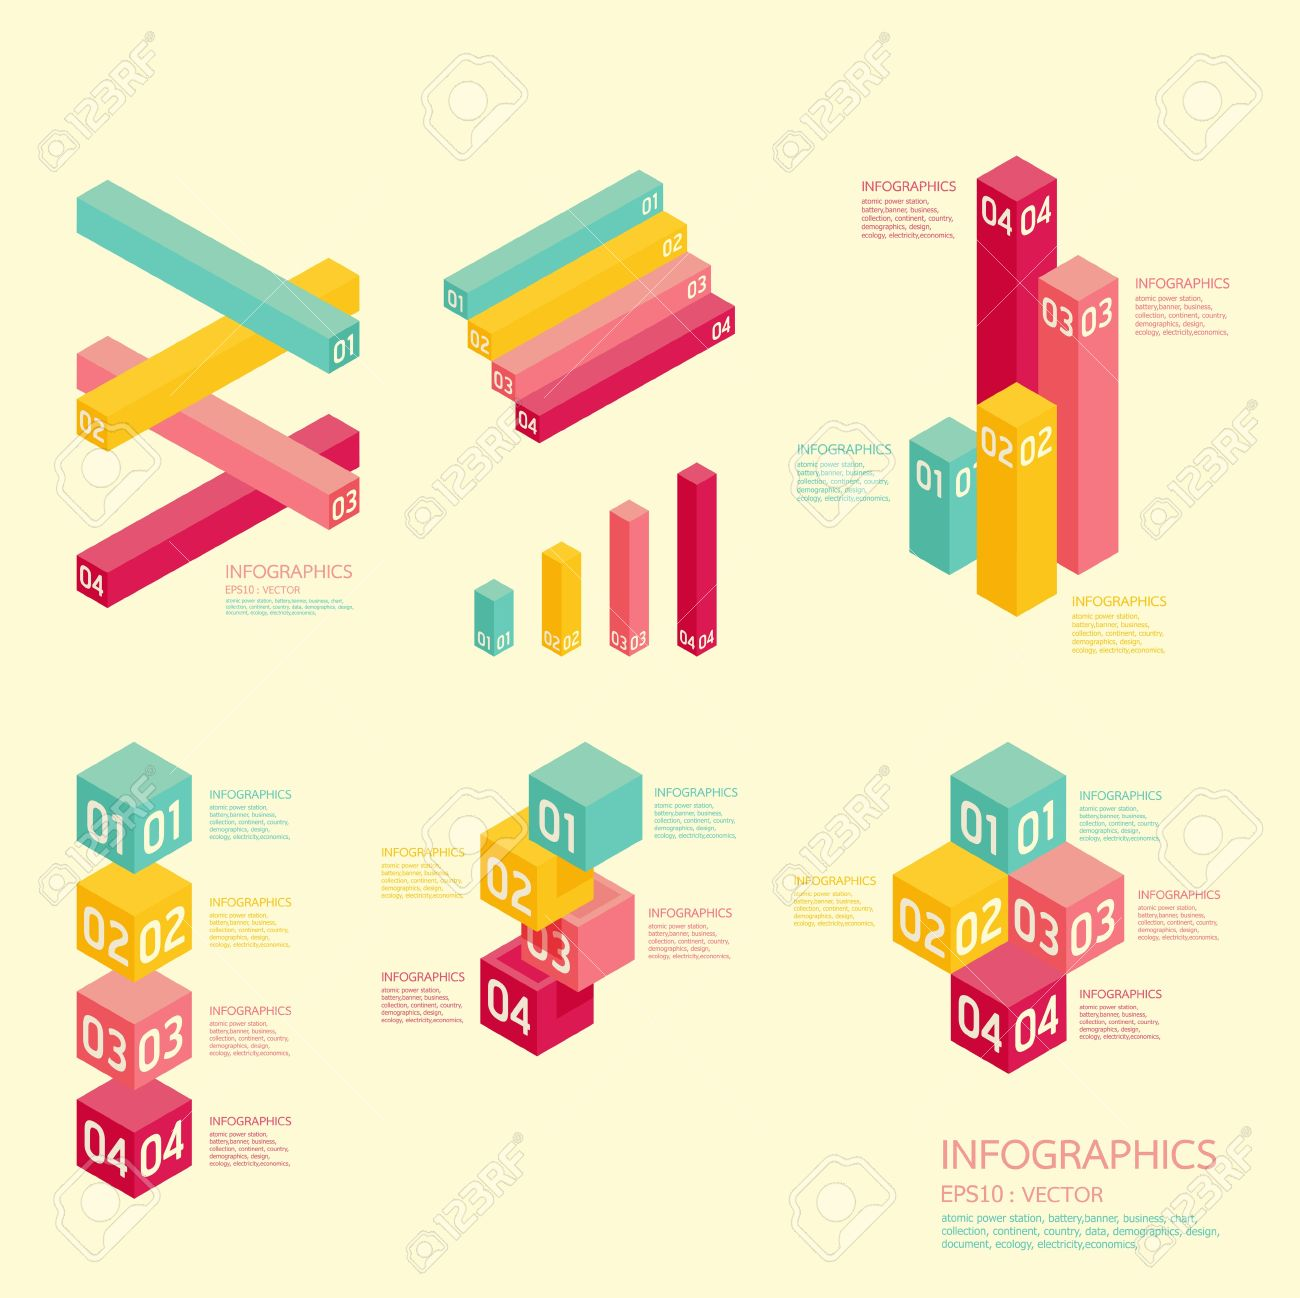 Website soft colors - Modern Soft Color Graph Design Can Be Used For Infographics Numbered Banners Graphic Or Website Layout